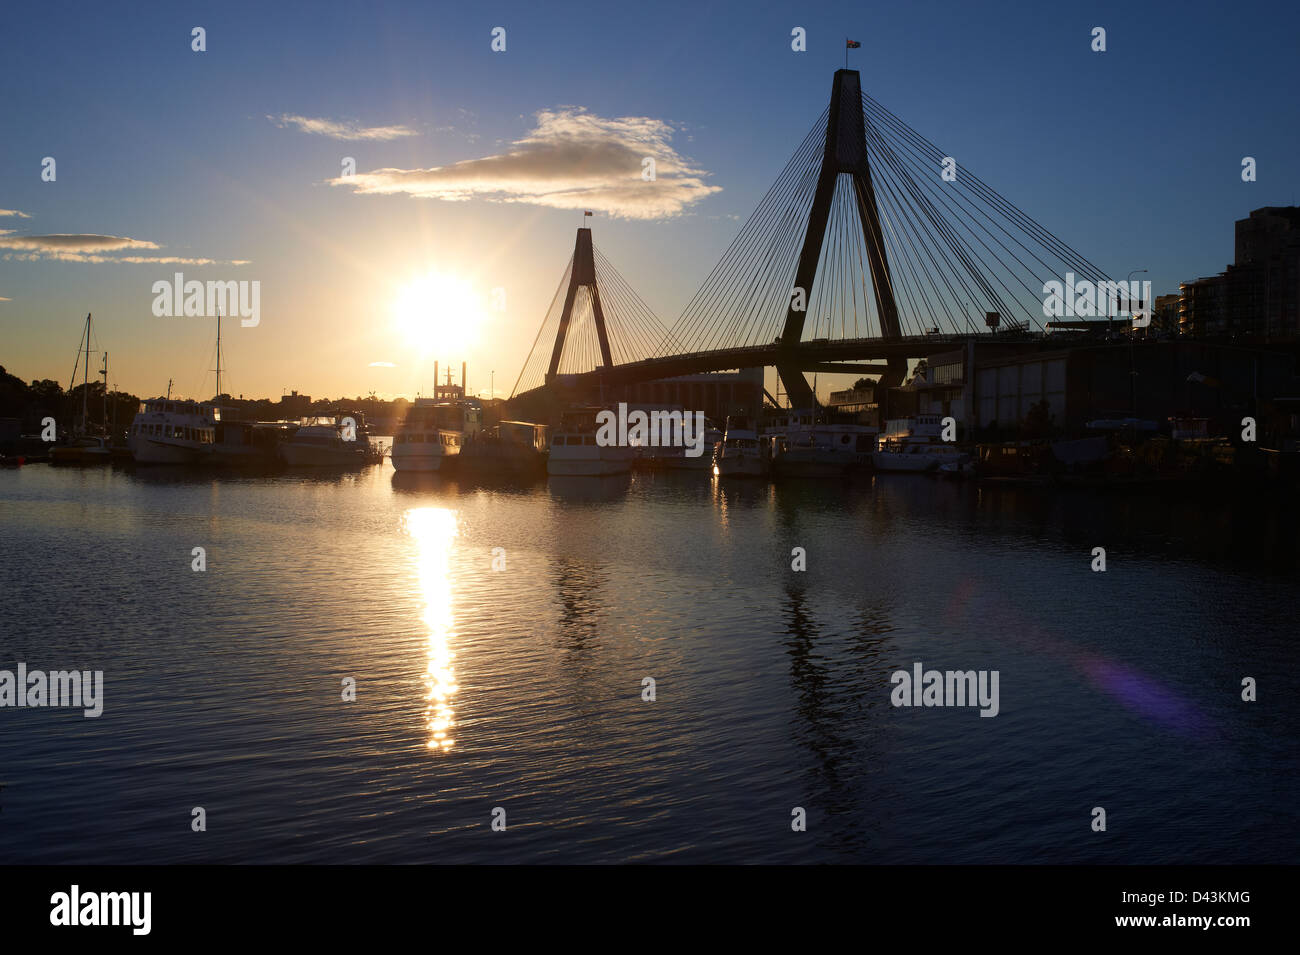 Glebe Island Bridge & Johnstons Bay, Pyrmont Sydney at sunset Stock Photo